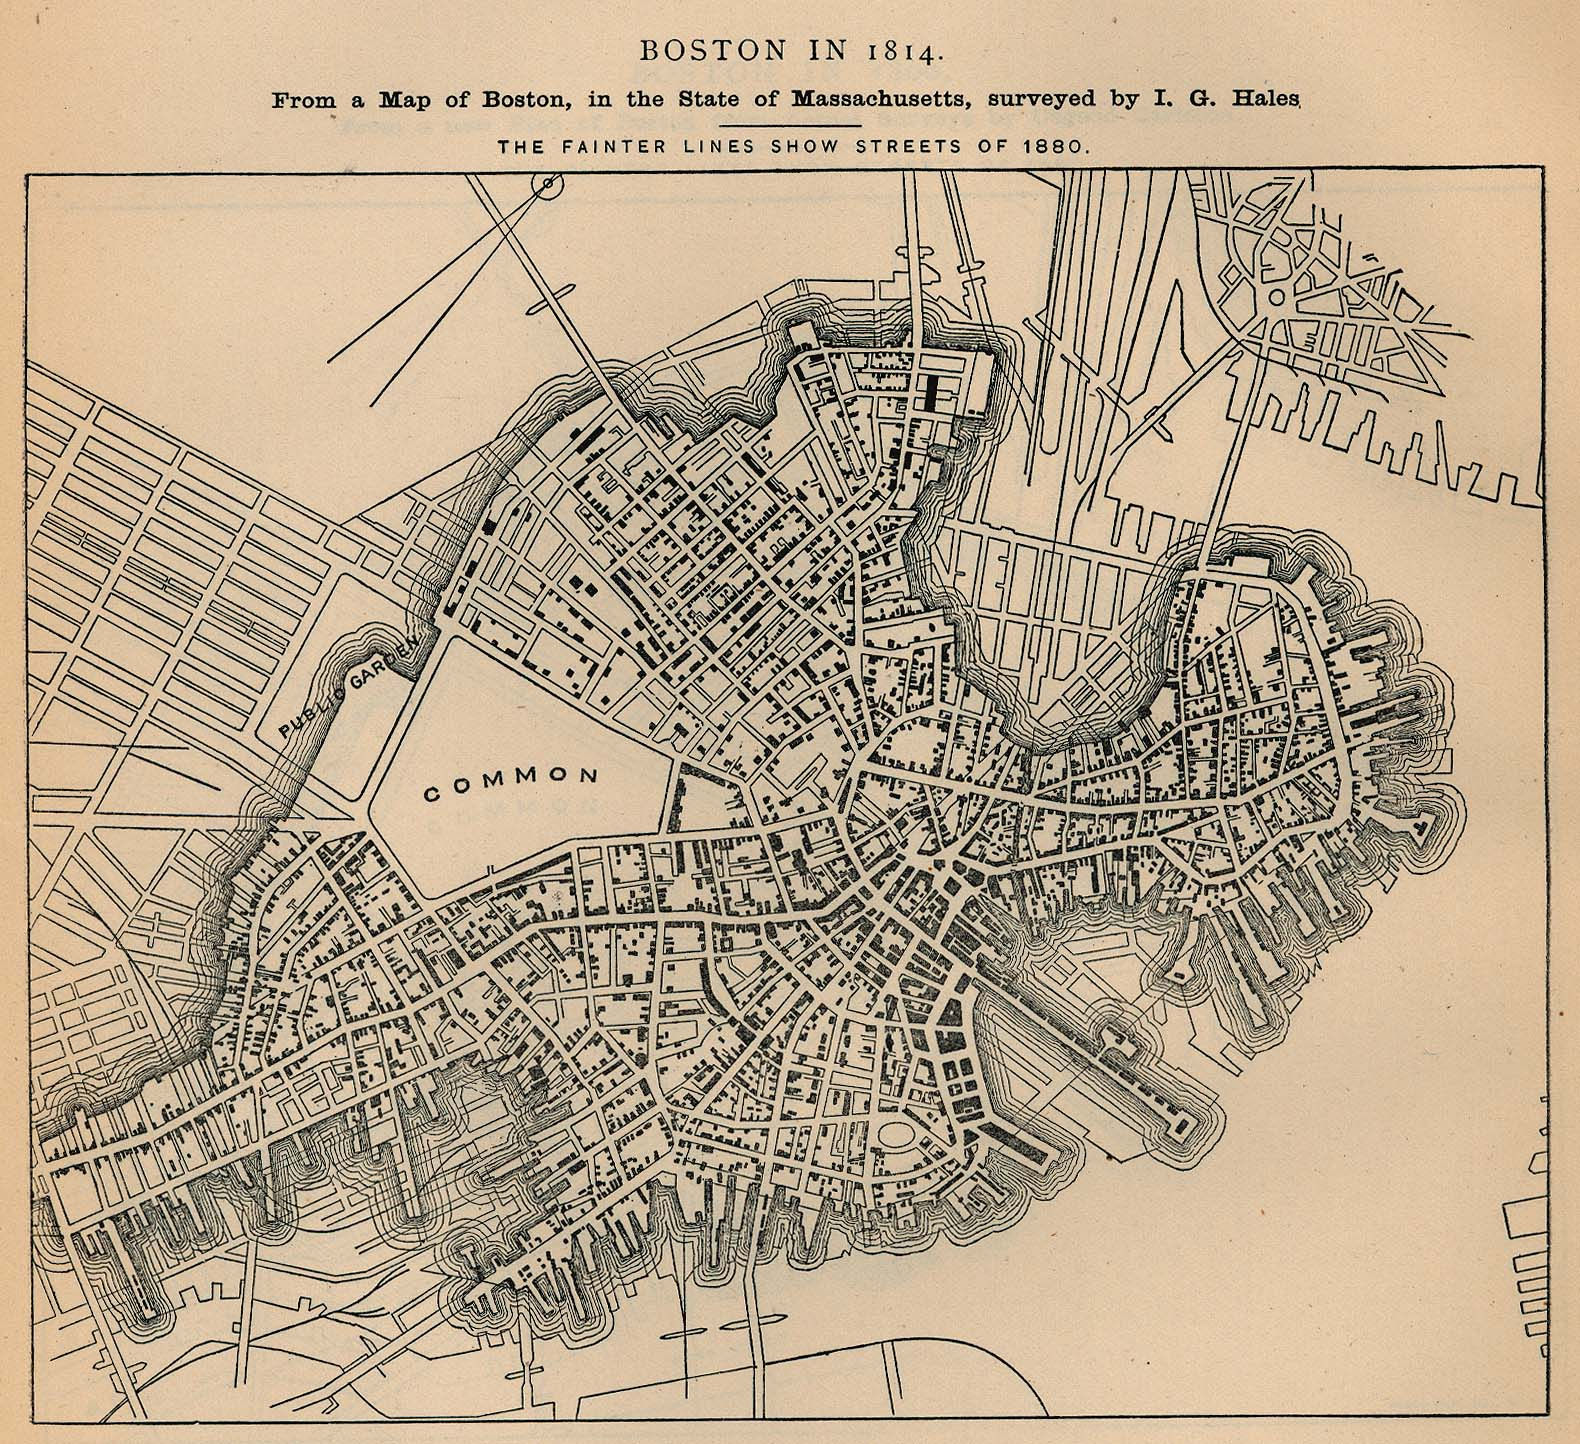 Boston maps atlases and city streets directories bu libraries 491k boston massachusetts 1814 malvernweather Choice Image